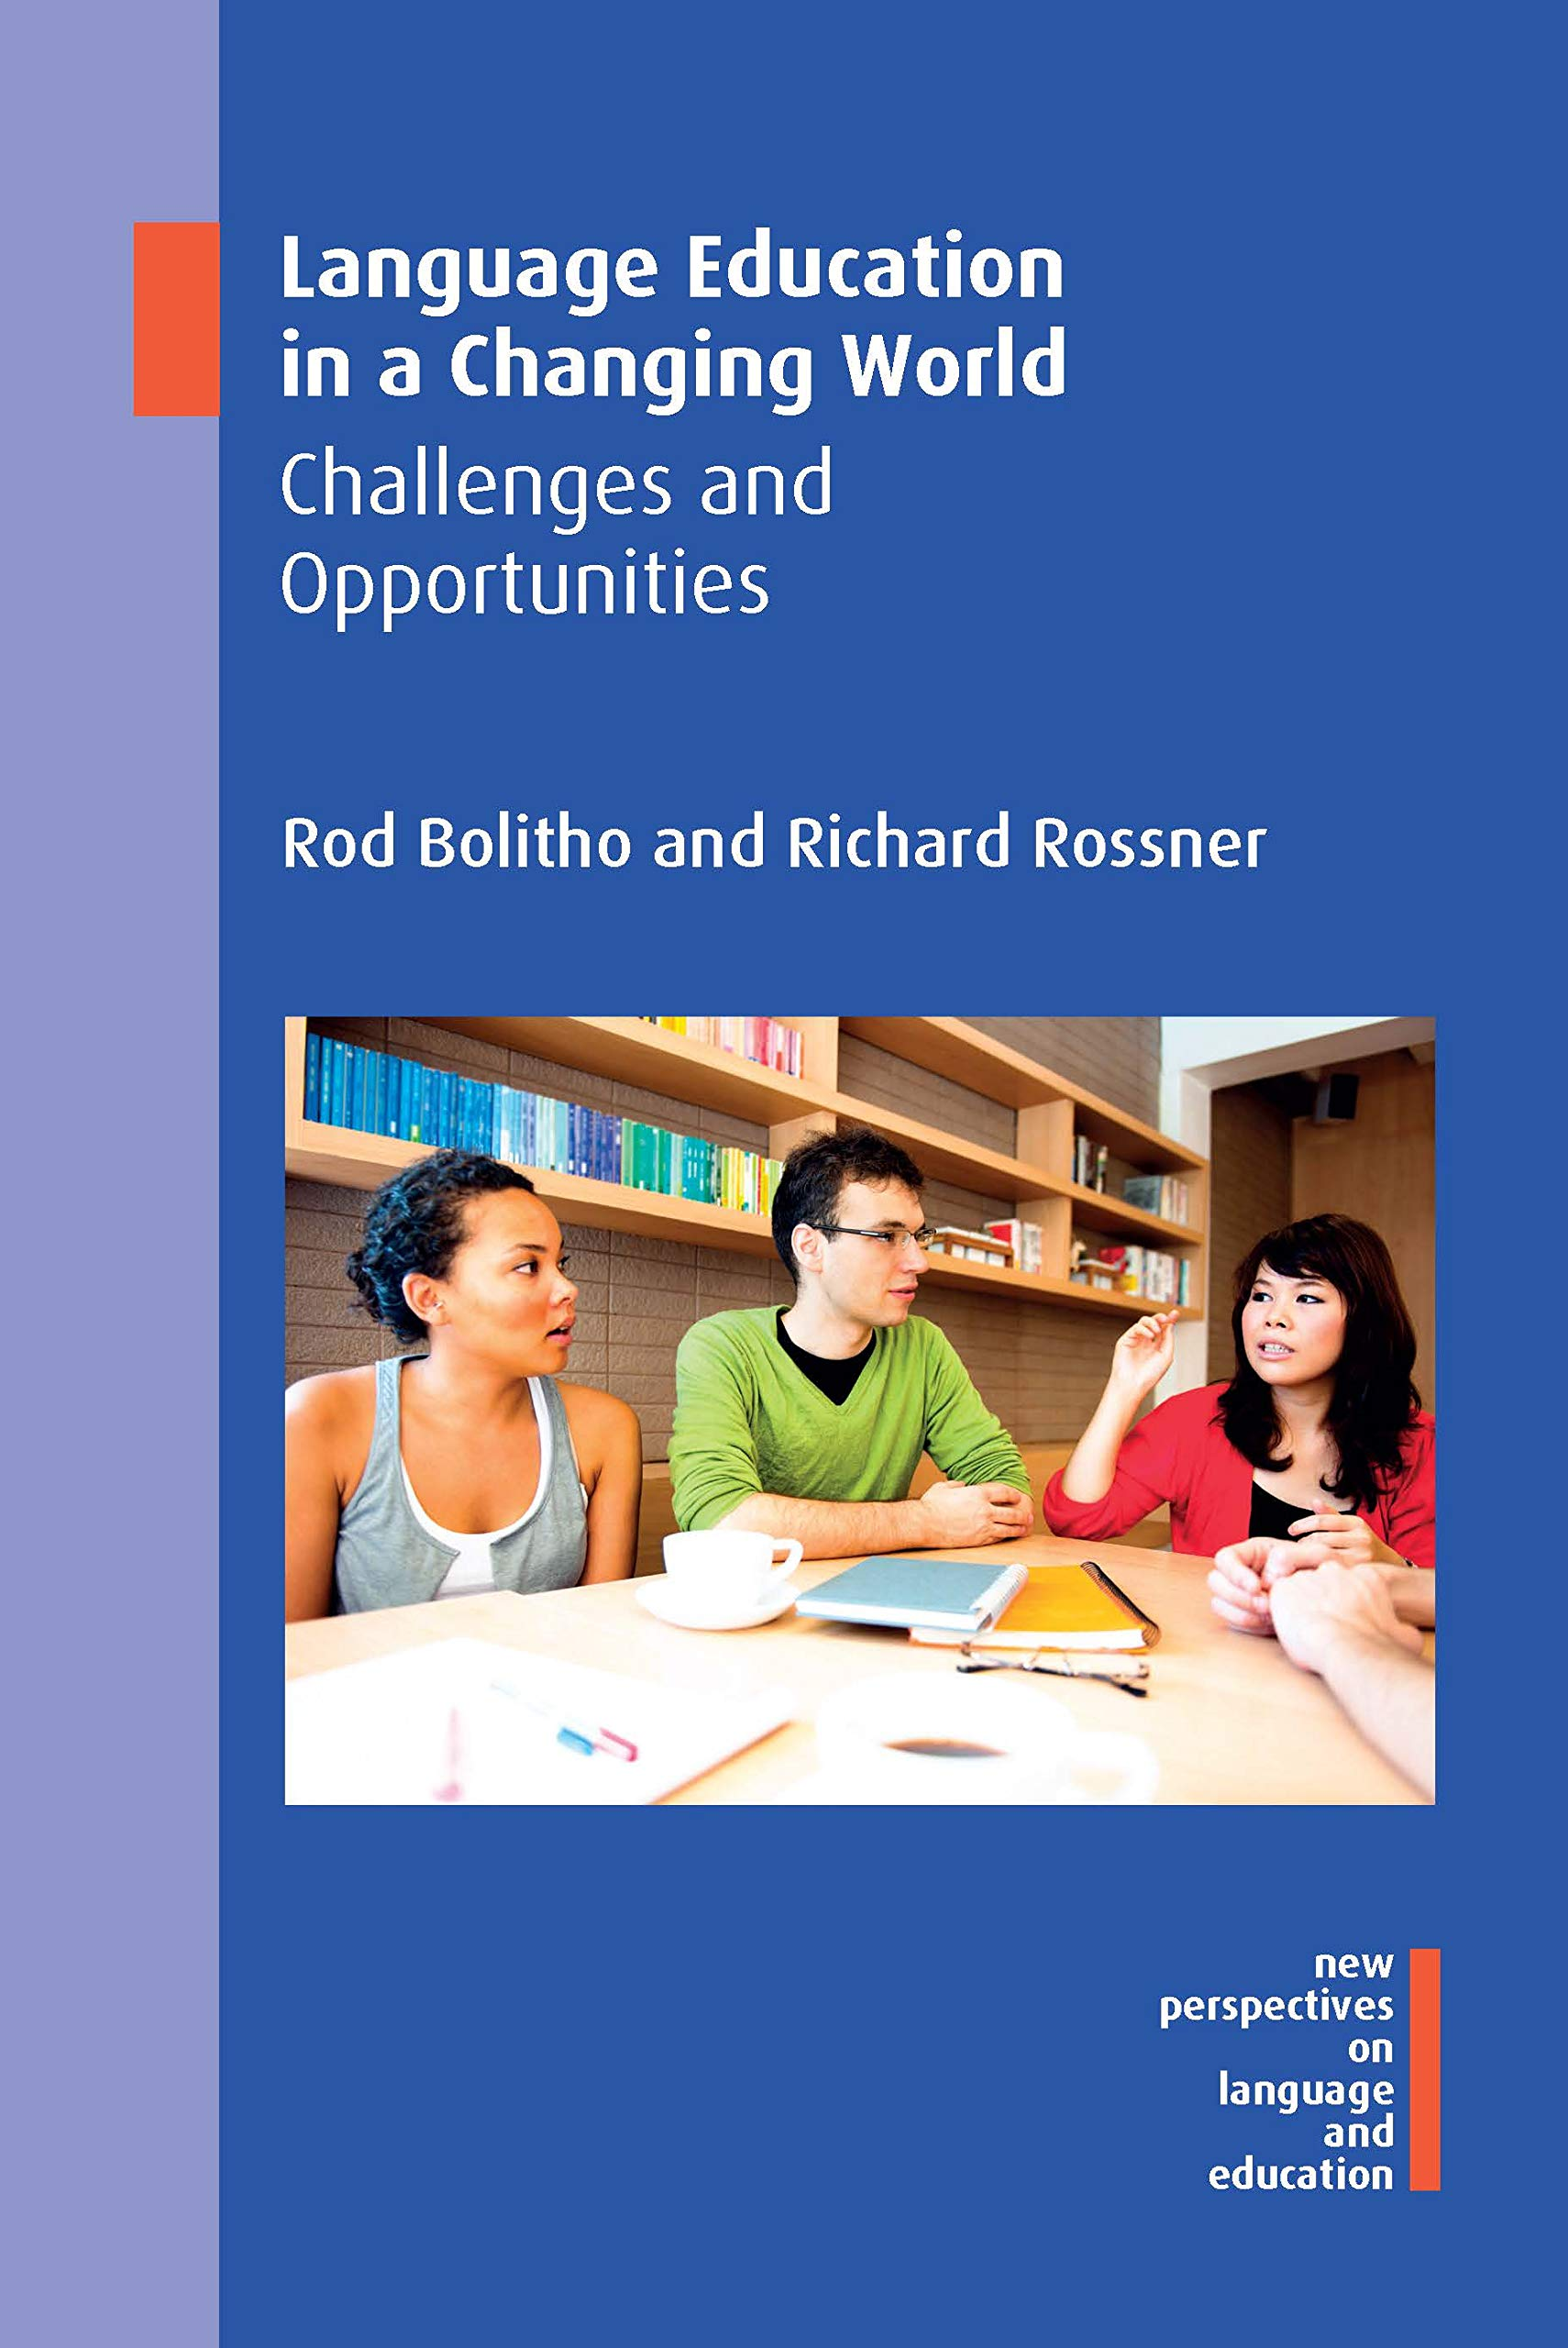 Language Education in a Changing World: Challenges and Opportunities (New  Perspectives on Language and Education Book 79) - Kindle edition by  Bolitho, Dr. Rod, Rossner, Richard. Reference Kindle eBooks @ Amazon.com.